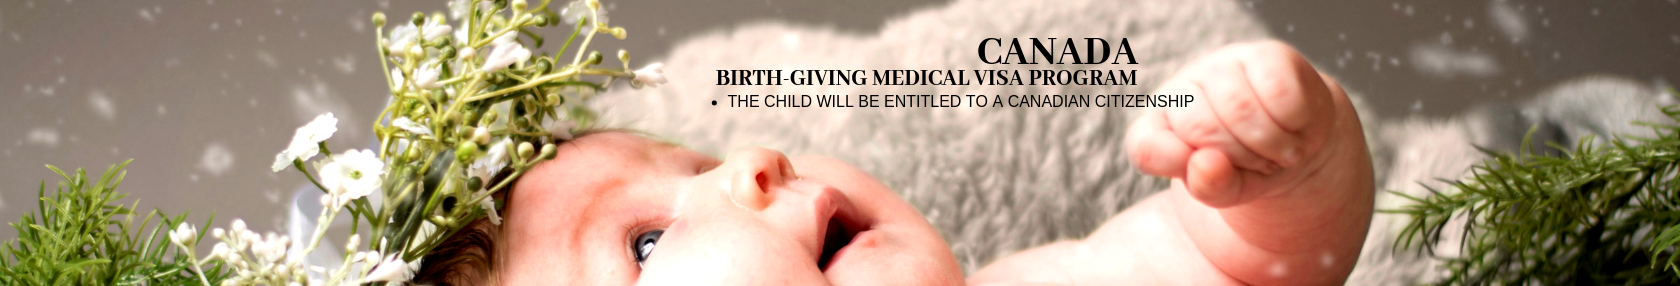 Canada, Birth-Giving Medical Visa